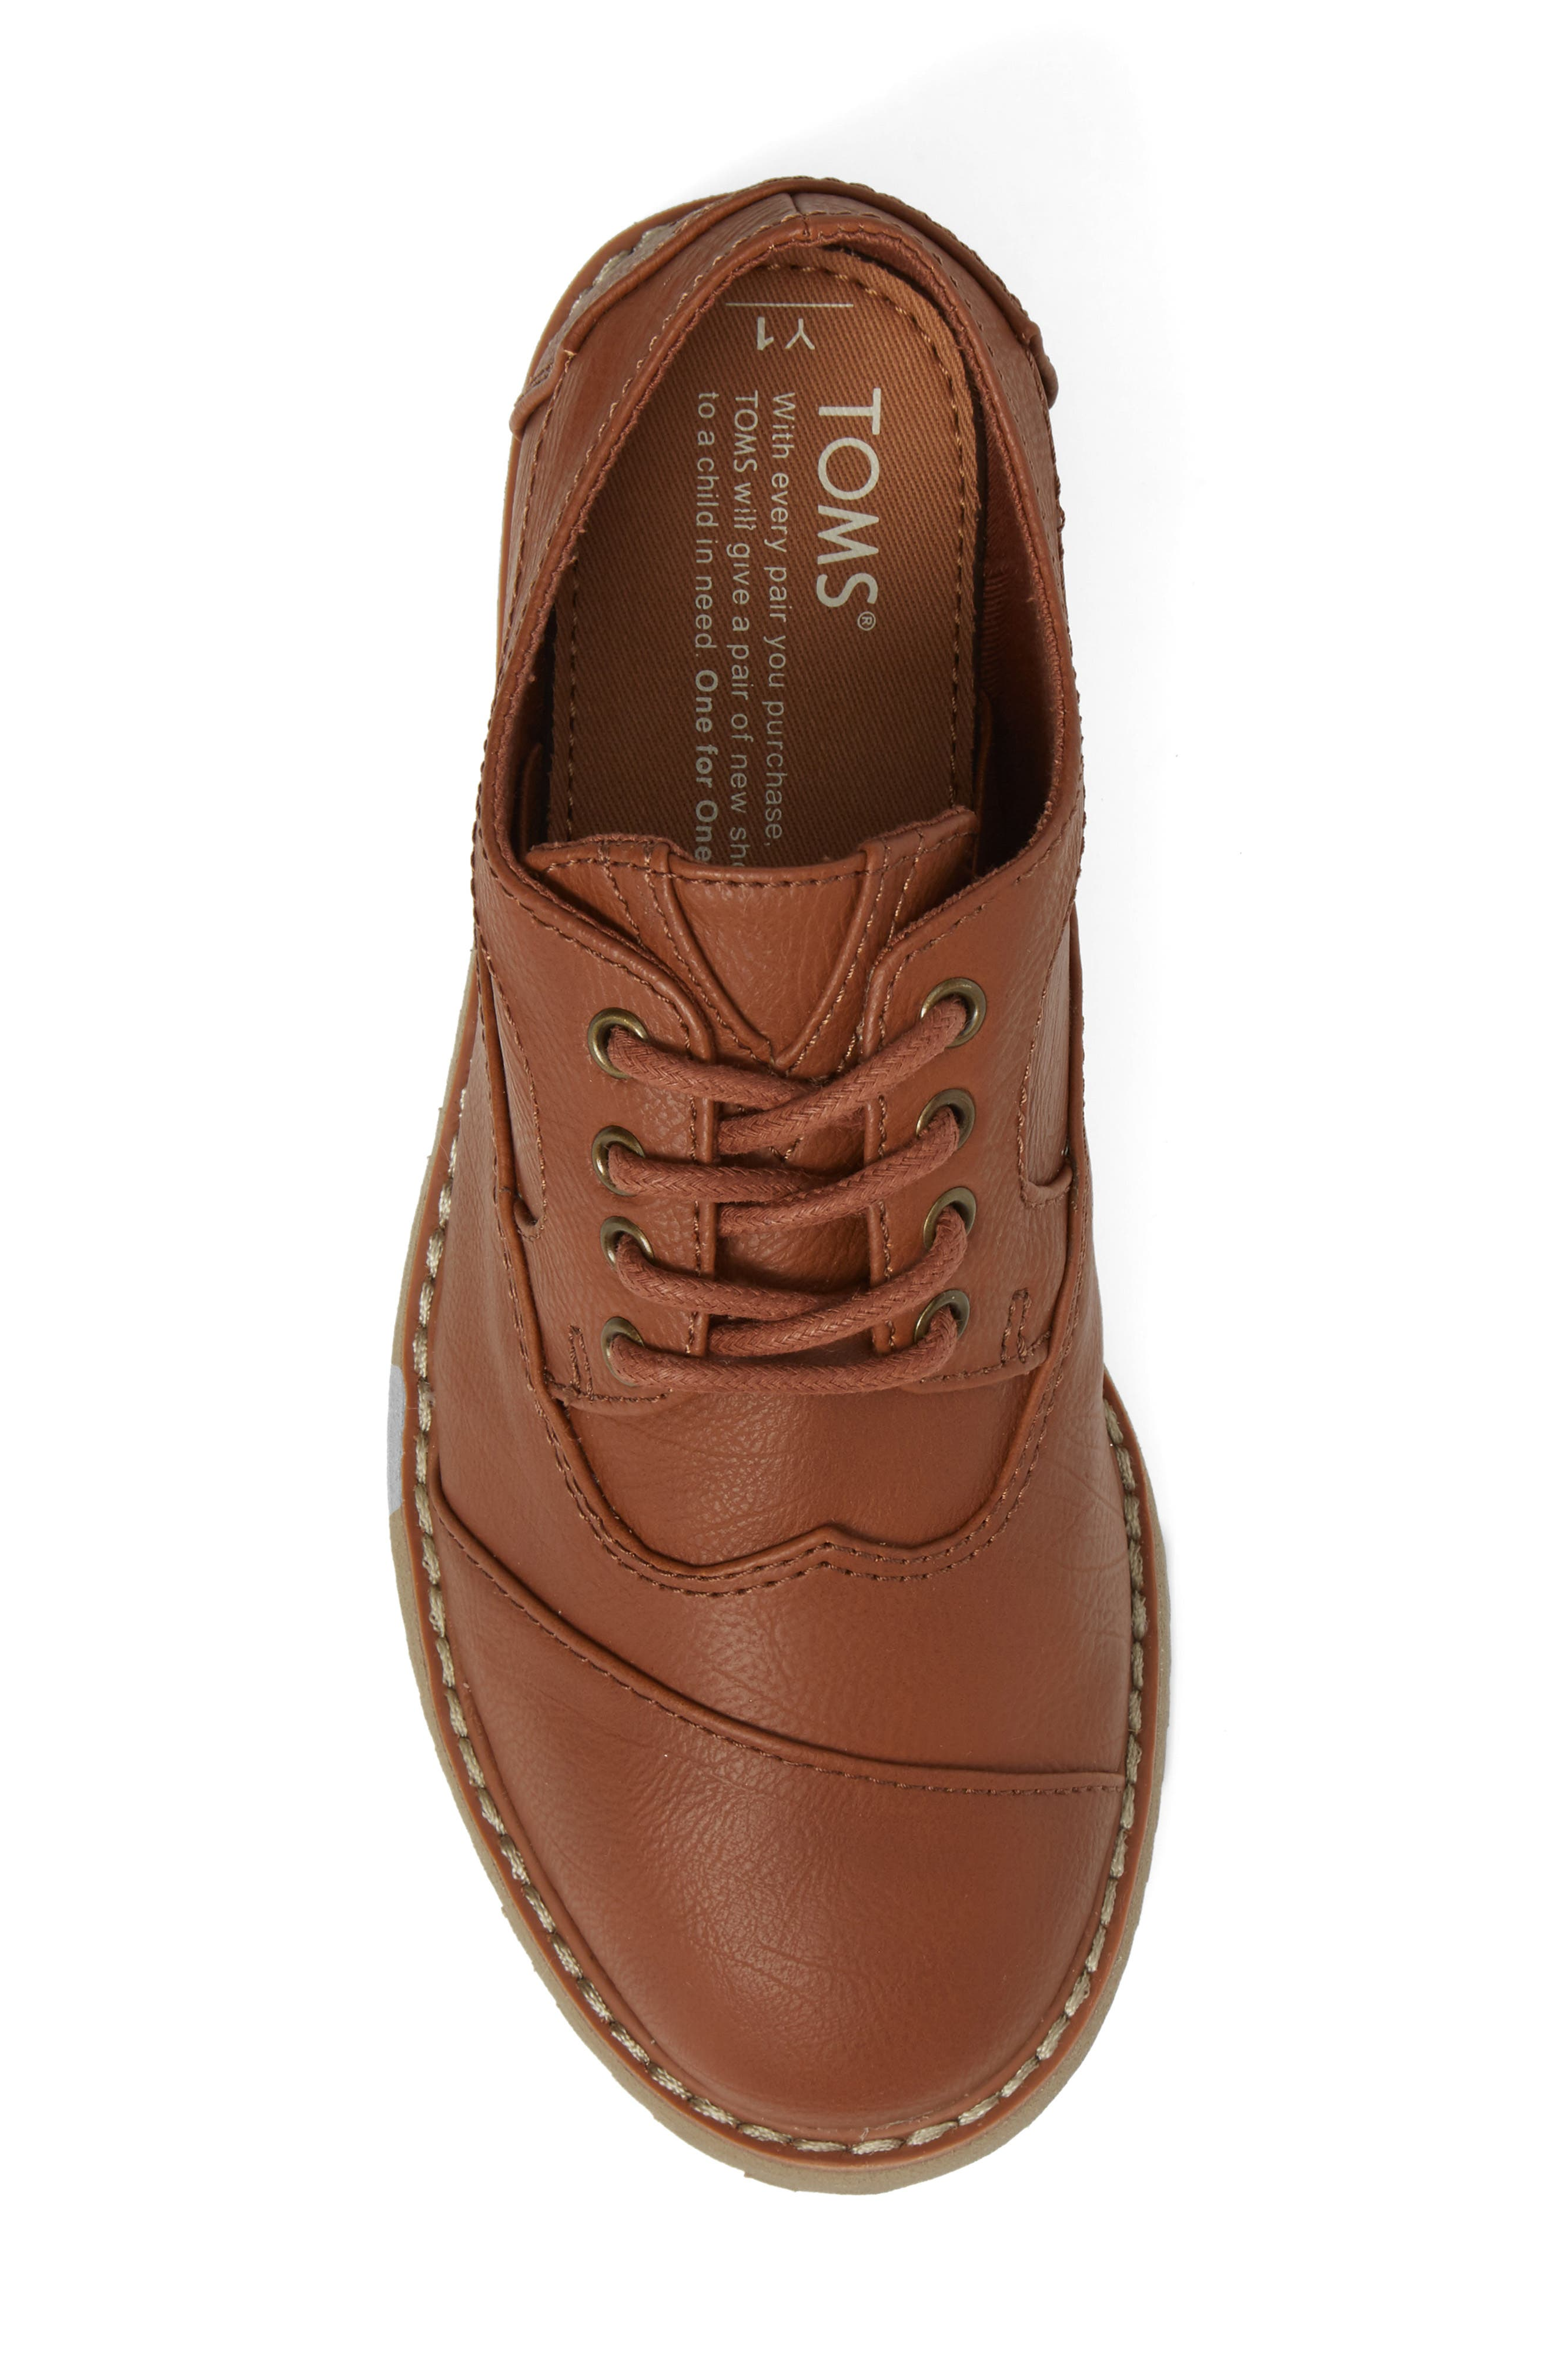 Brogue Cap Toe Wingtip Oxford,                             Alternate thumbnail 5, color,                             TOFFEE